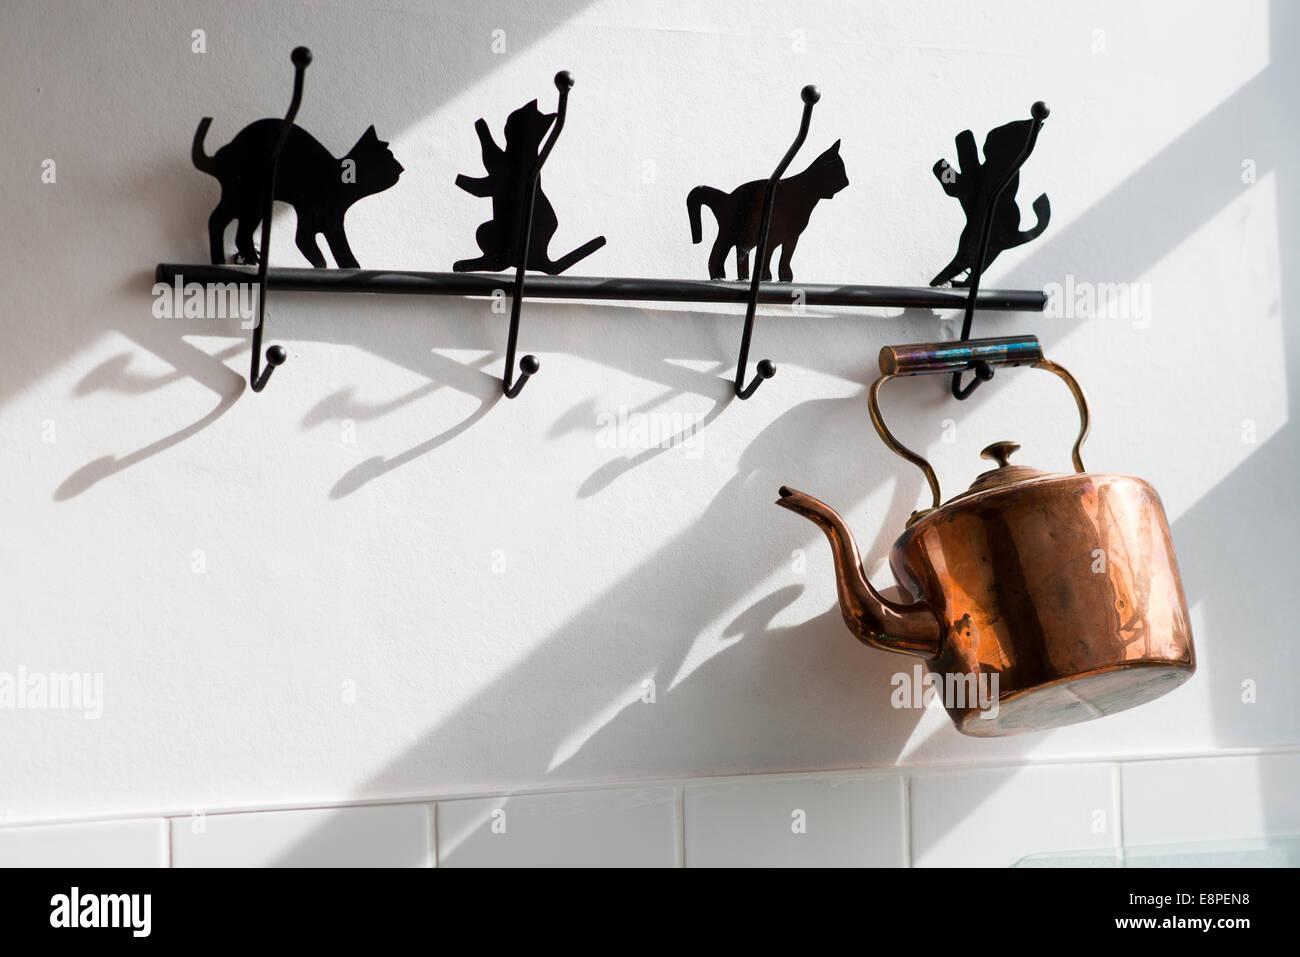 Brass pot - Kitchen - Stock Image